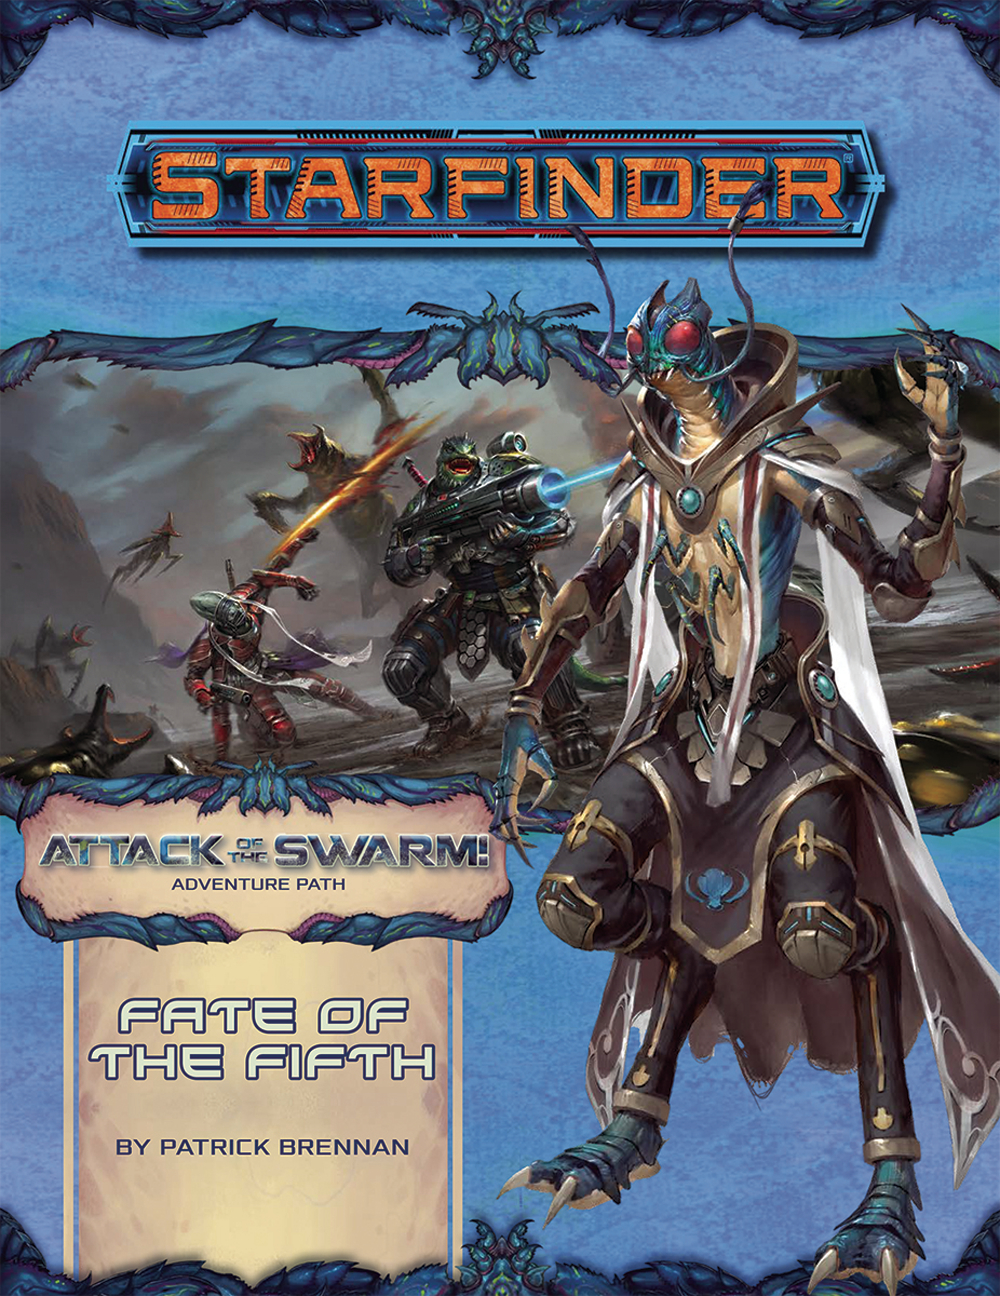 STARFINDER RPG ADV PATH FATE O/T FIFTH PT 1 OF 6